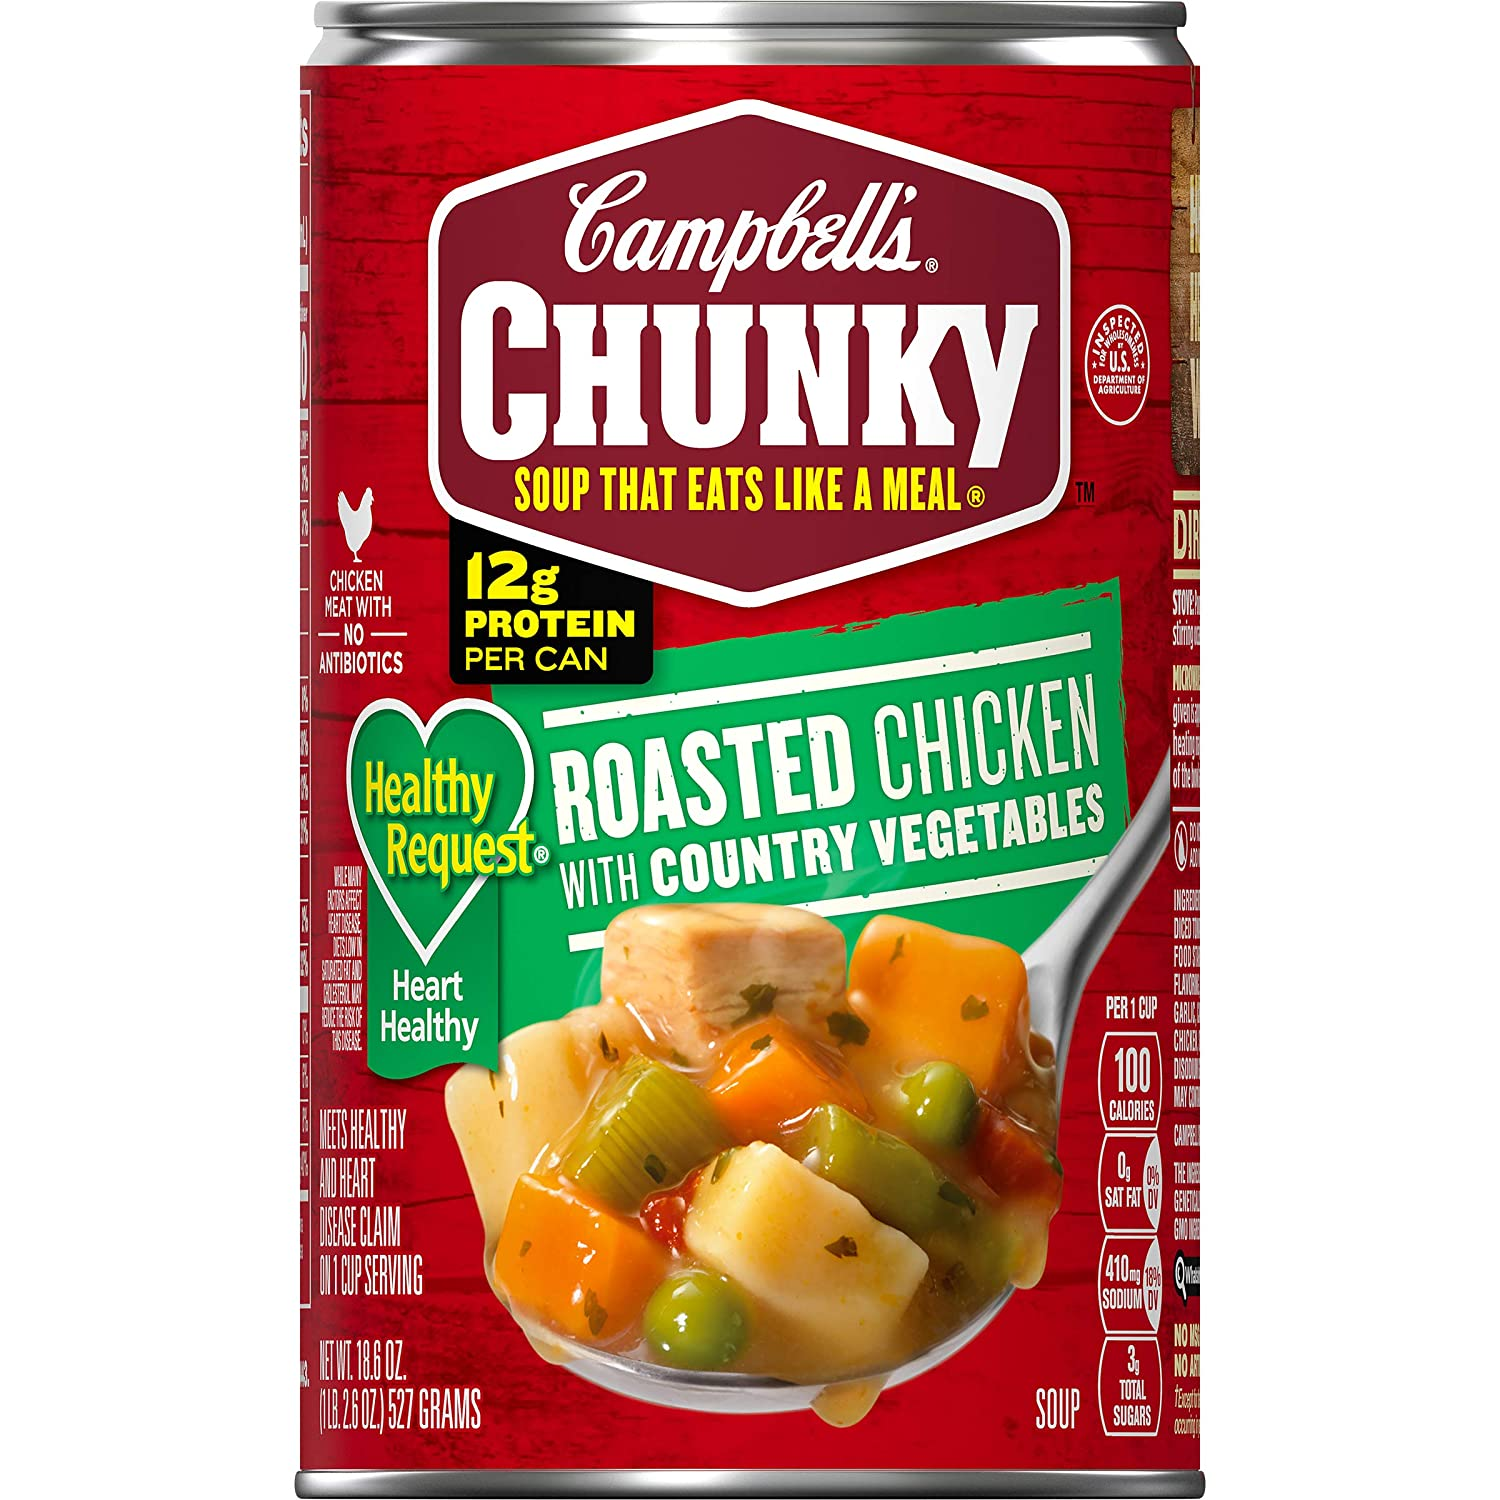 Campbell's Chunky Healthy Request Soup, Roasted Chicken with Country Vegetables, 18.6 Ounce (Pack of 12)